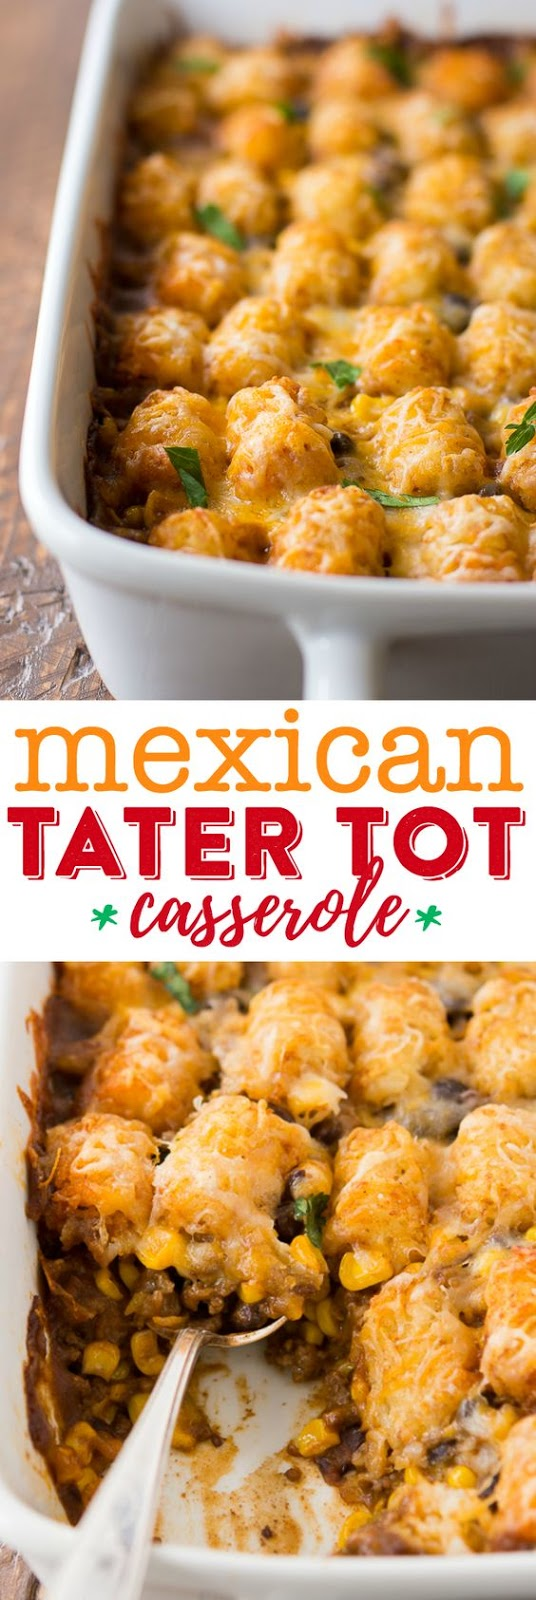 This delicious taco-inspired tater tot casserole recipe is chock-full of black beans, corn, ground beef and a whole lot of flavor. Oh, did I mention it's also loaded with cheese? Yep. We definitely have the cheese component covered!